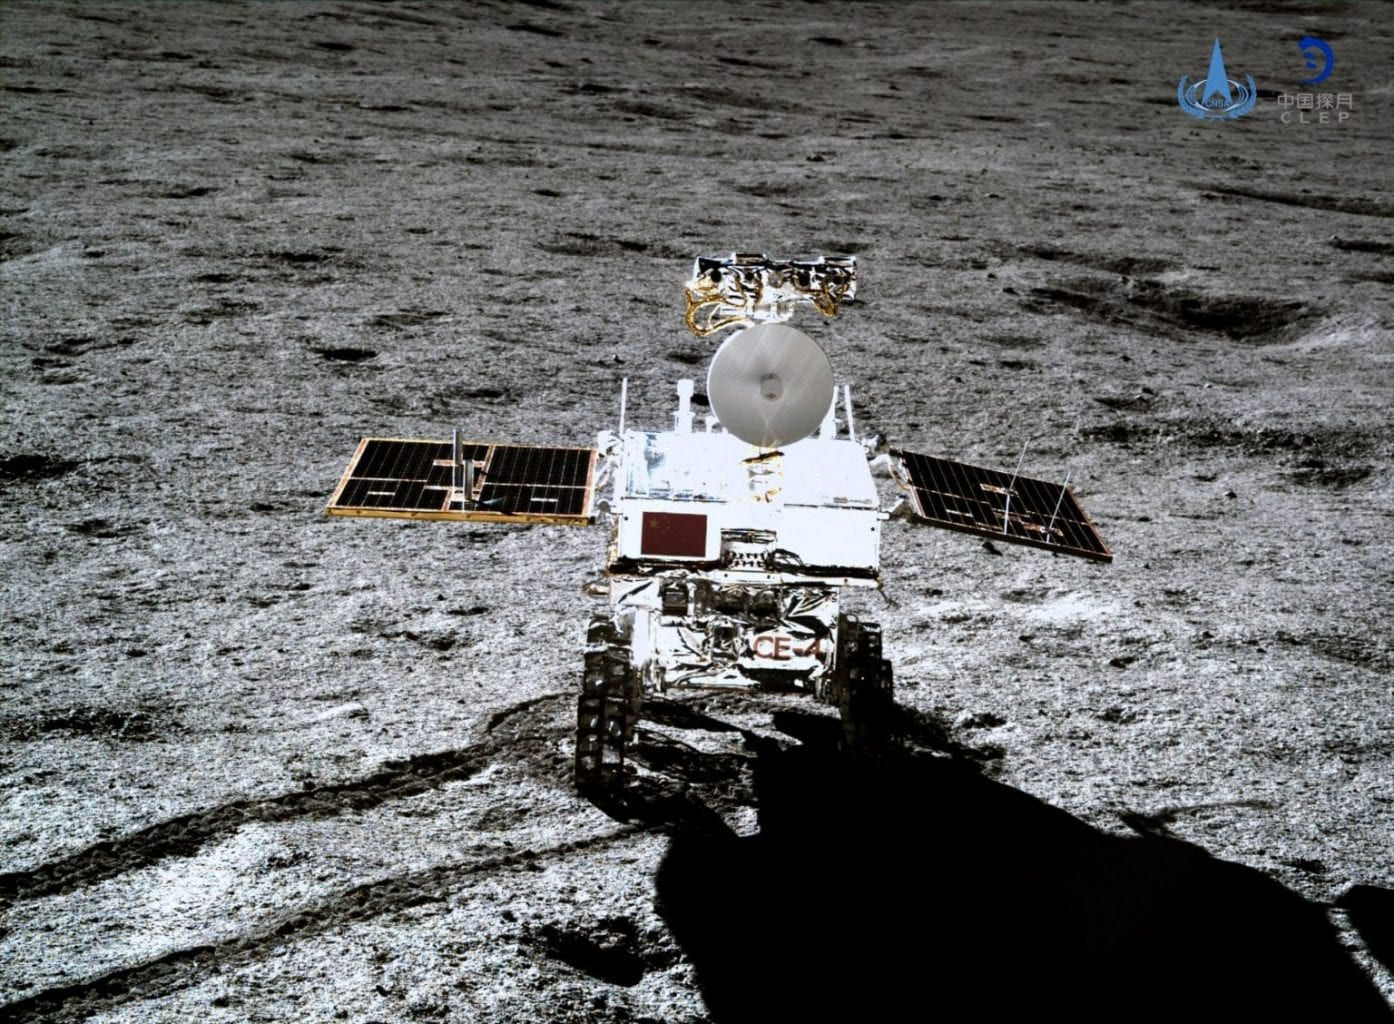 The Chang'e 4 lunar rover Yutu-2 photographed from the lander. Credit: CNSA/CLEP